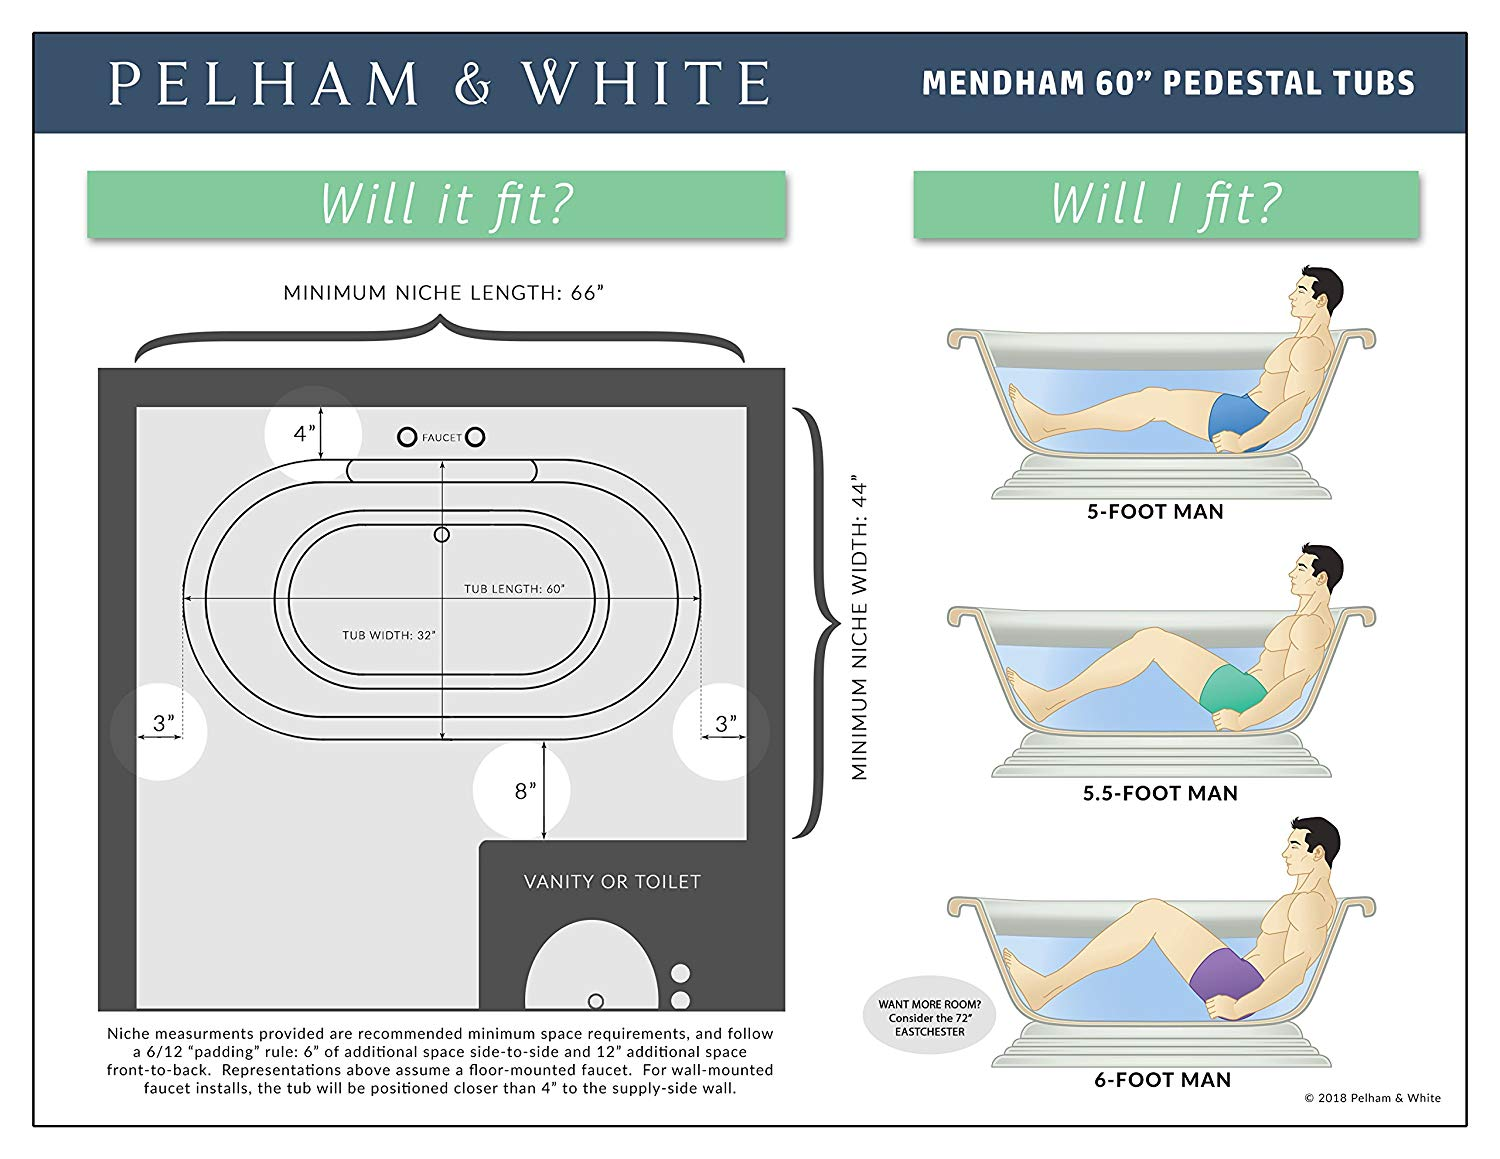 Luxury 60 inch Freestanding Tub with Vintage Tub Design in White, Includes Pedestal Base and Brushed Nickel Drain, from the Mendham Collection